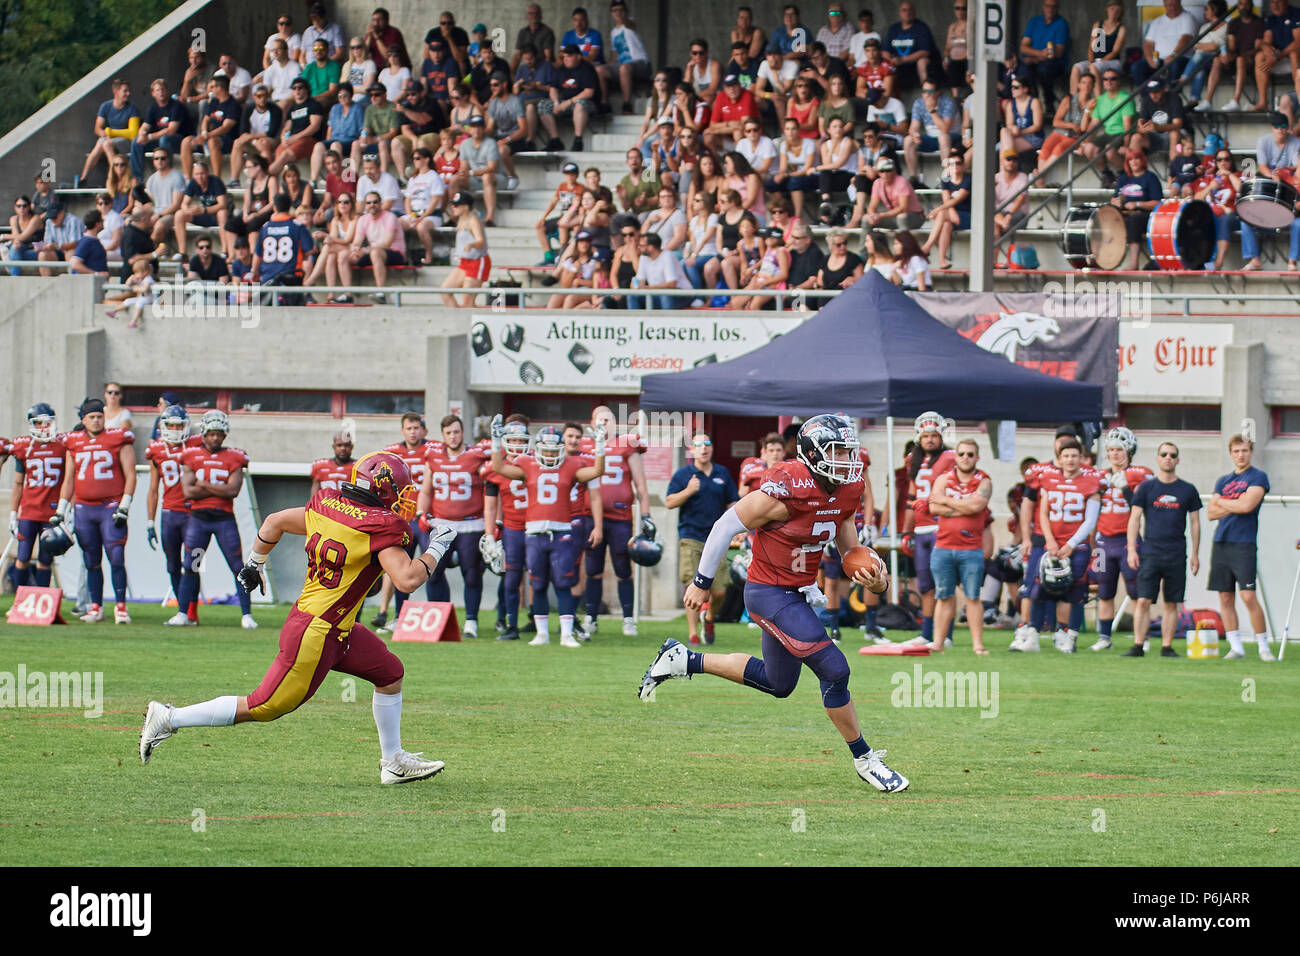 Chur, Switzerland. 30th June 2018. Clark Evans runs for a Touch Down during the American Football Swiss Bowl Play-of Game Calanda Broncos vs. Winterthur Warriors. Credit: Rolf Simeon/Alamy Live News - Stock Image